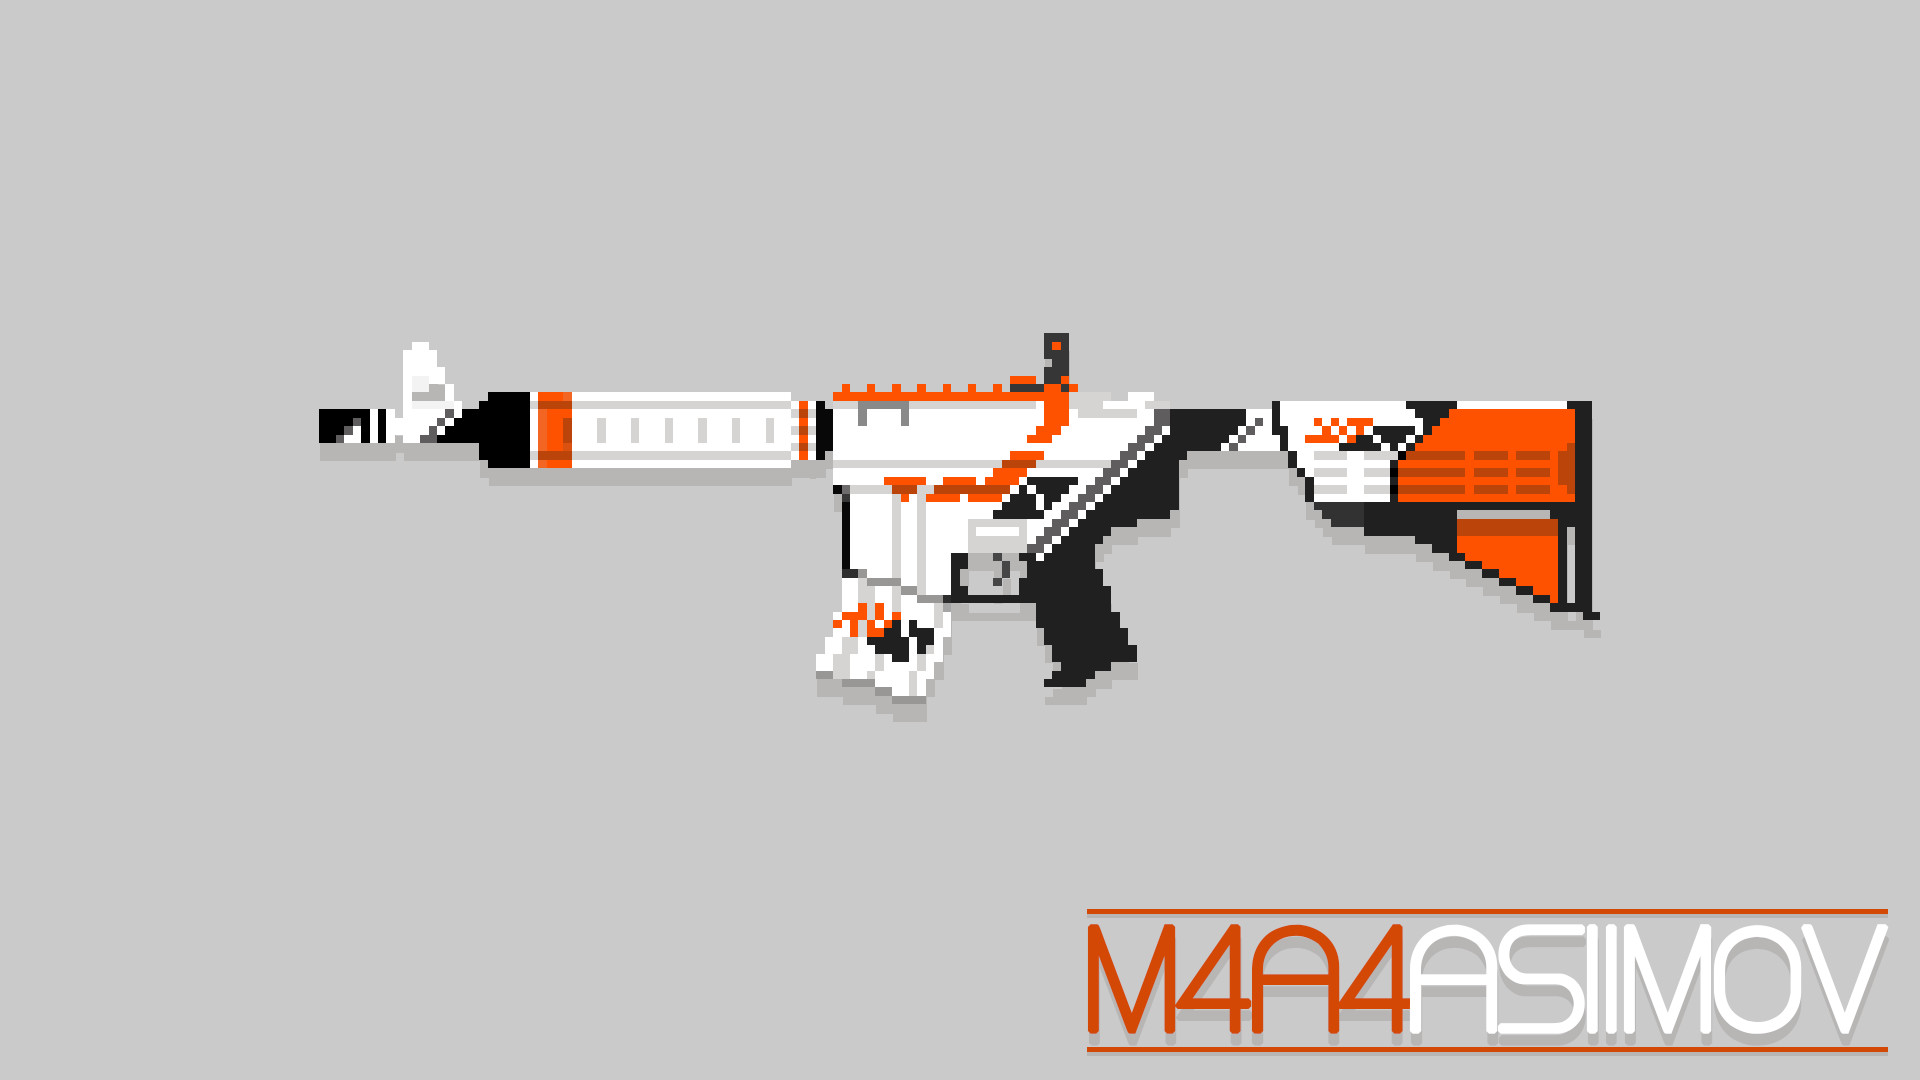 … M4A4 Asiimov – Pixel Art by stephenmdw